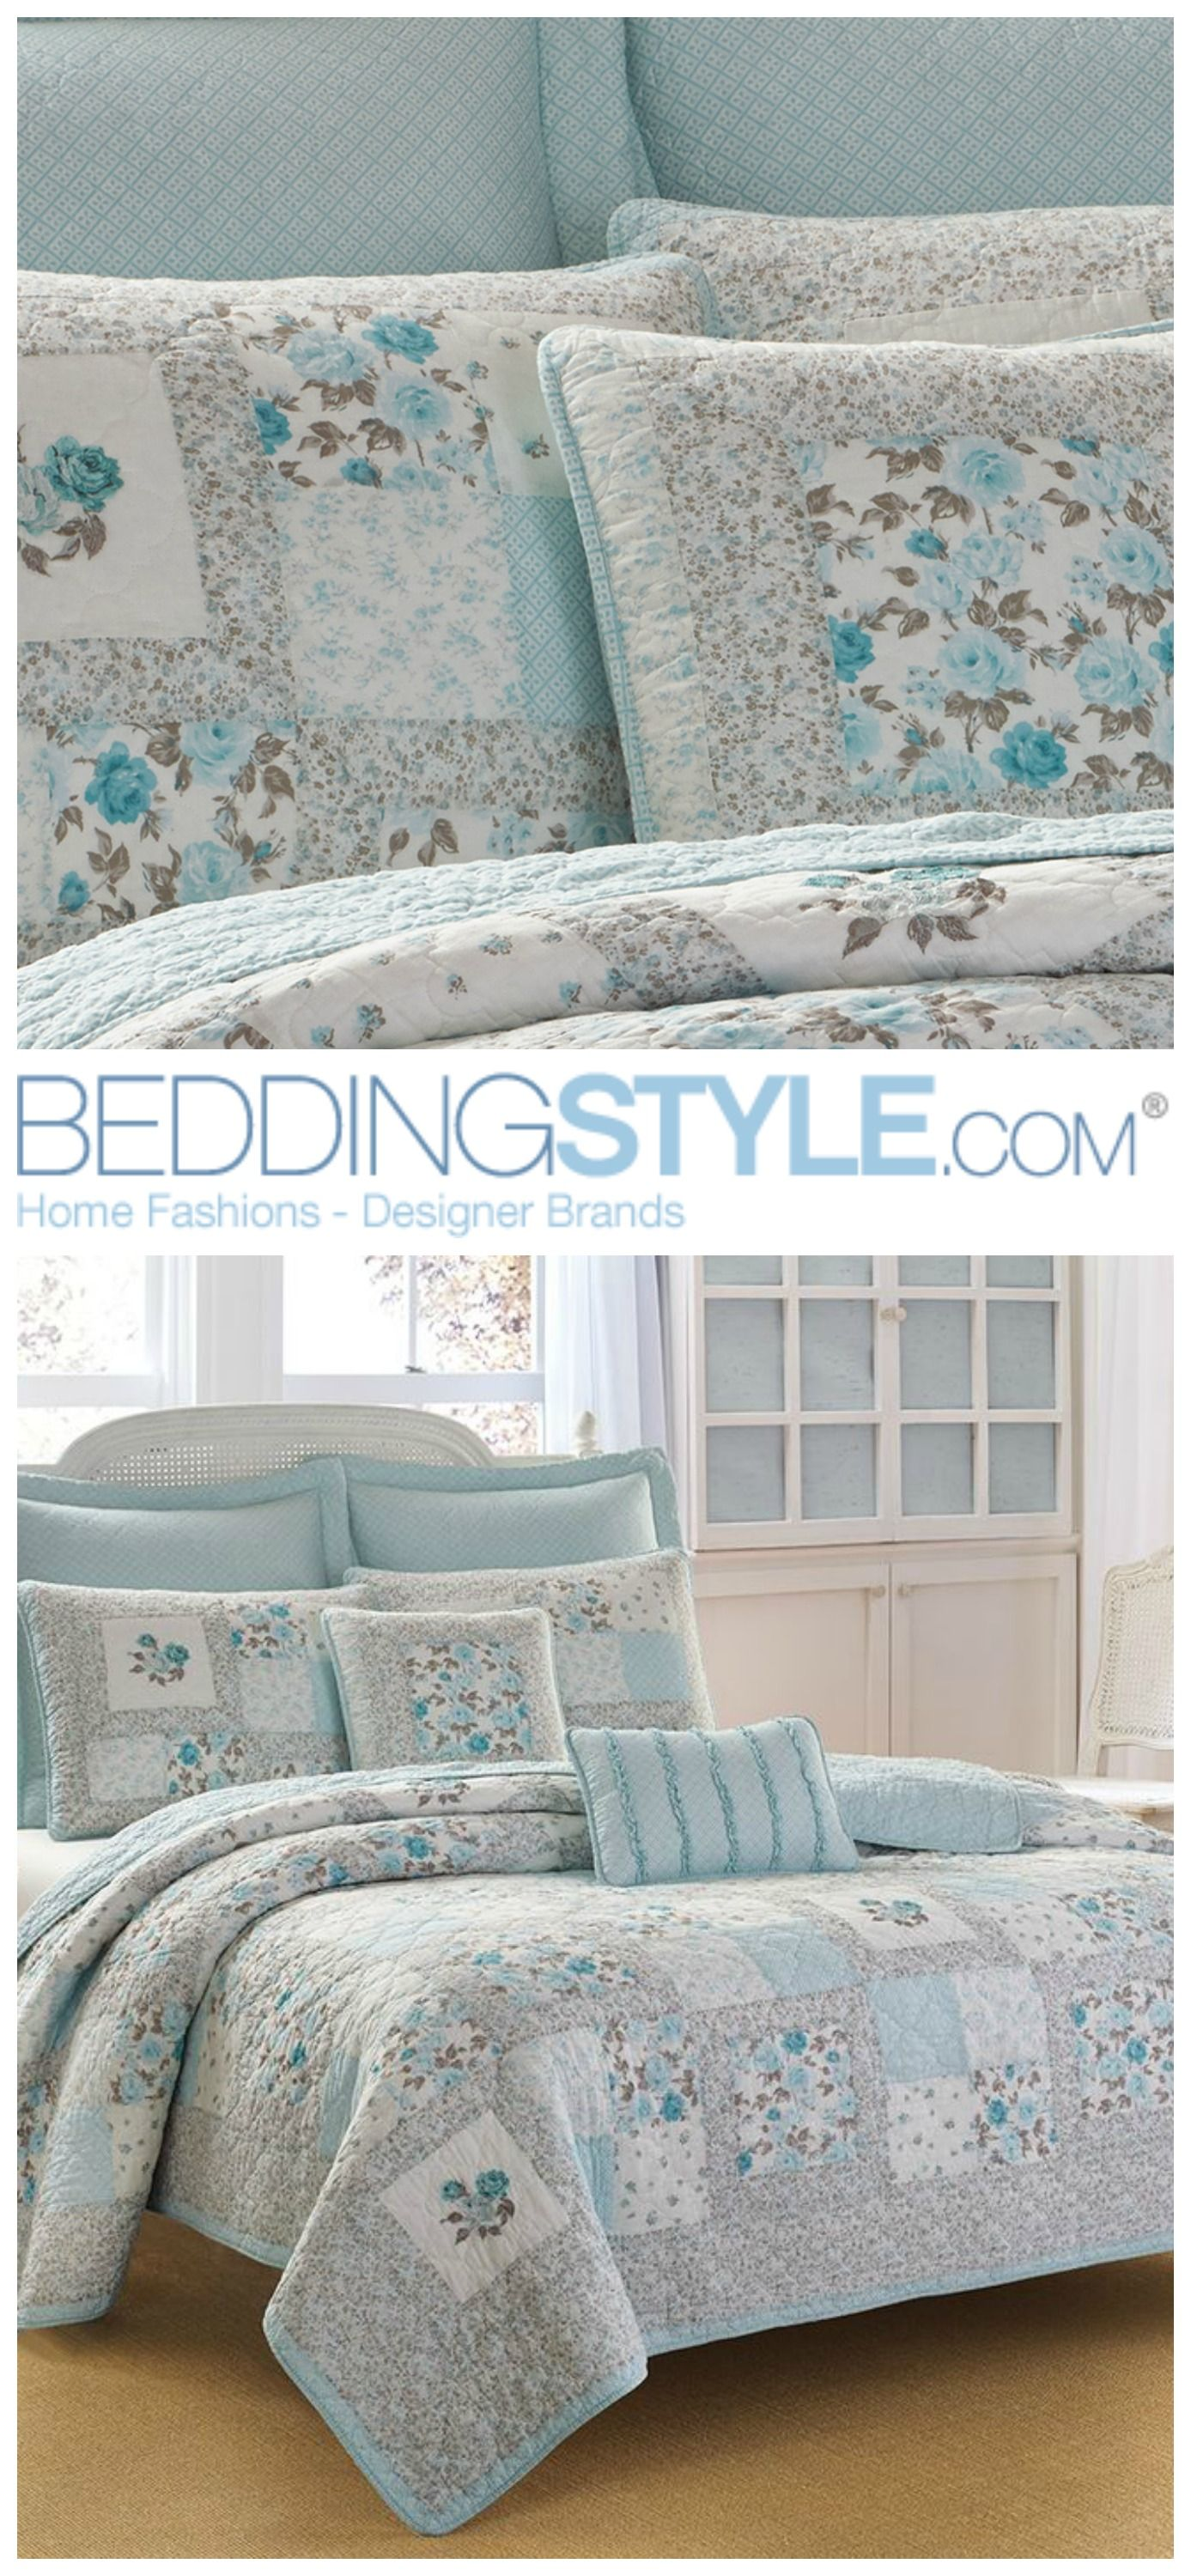 laura ashley everly quilt beddingstyle lauraashley floral